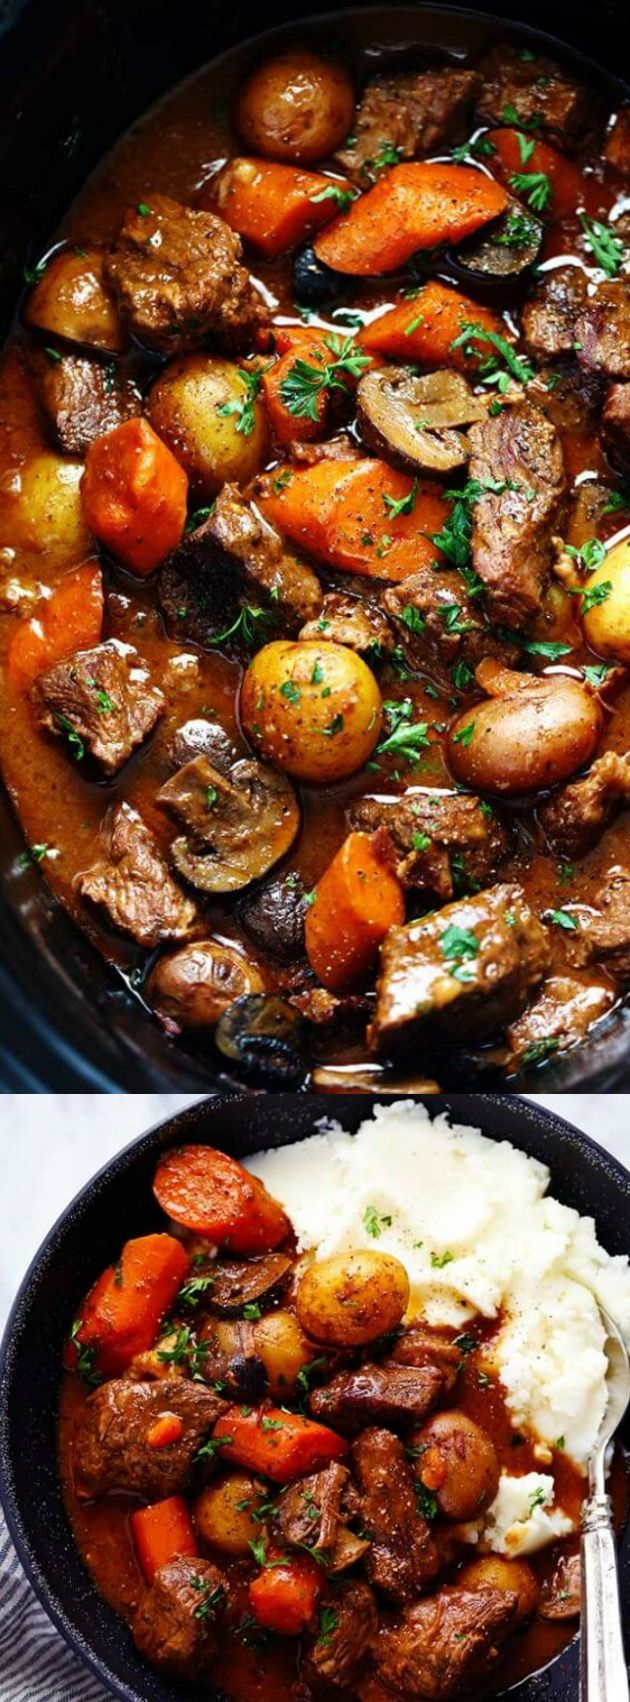 Slow Cooker Beef Dinner Recipes Beef Recipes For Dinner Recipes Slow Cooker Beef